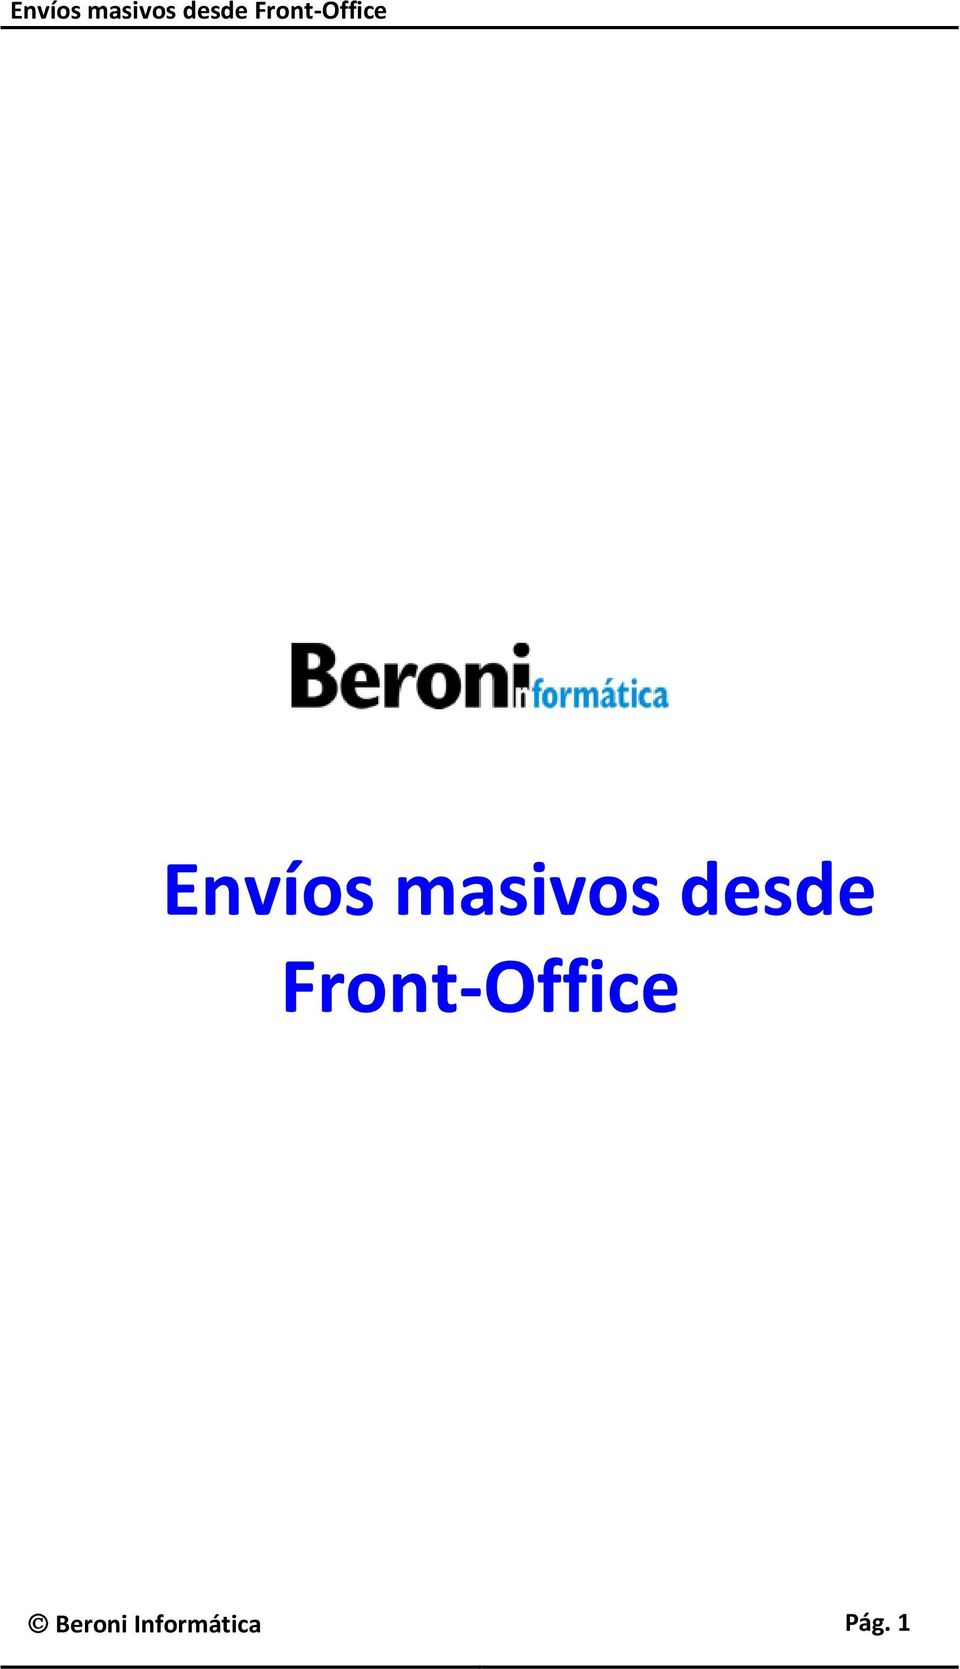 Front-Office